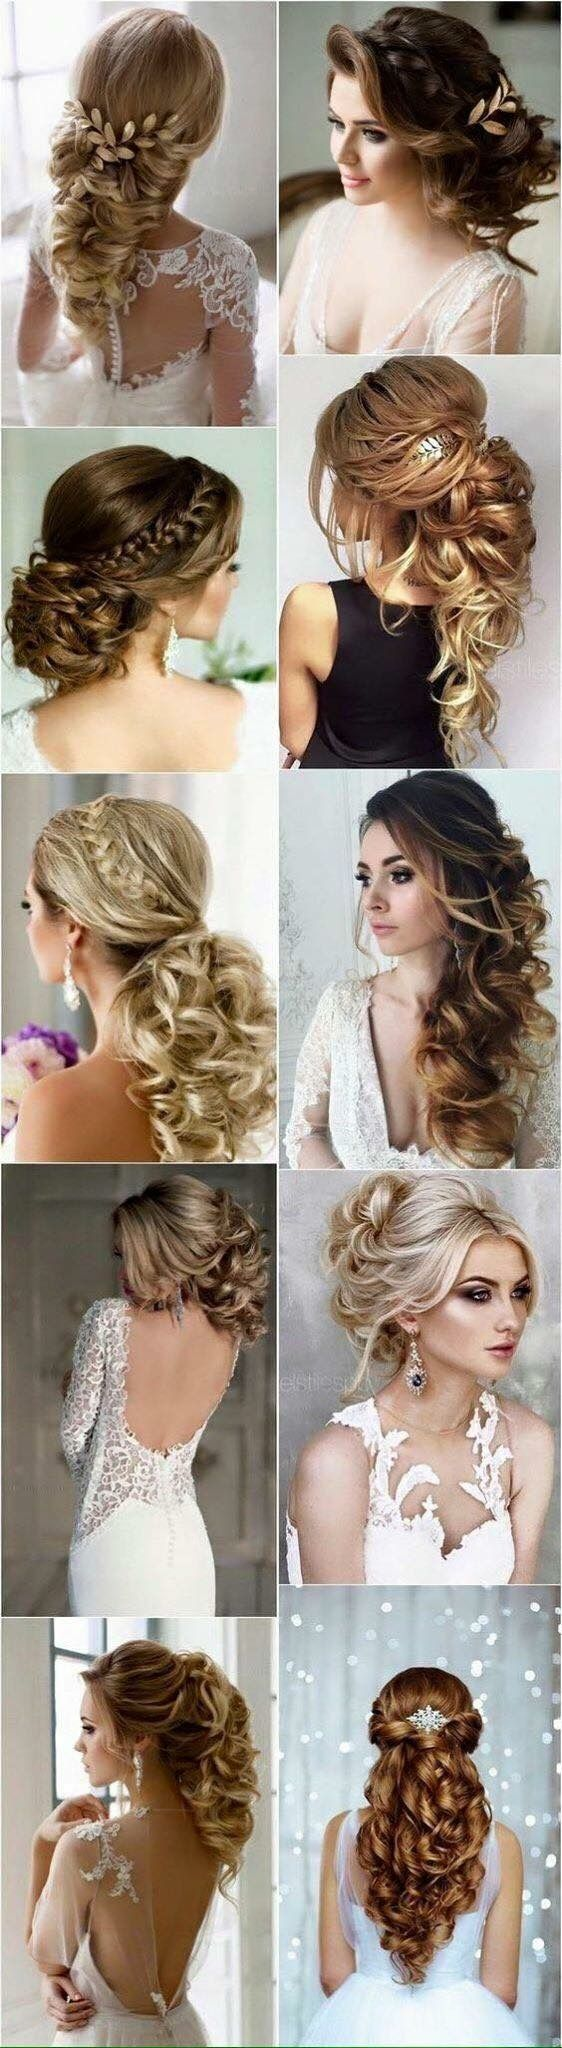 Hairstyles i may want to try hair pinterest hair style